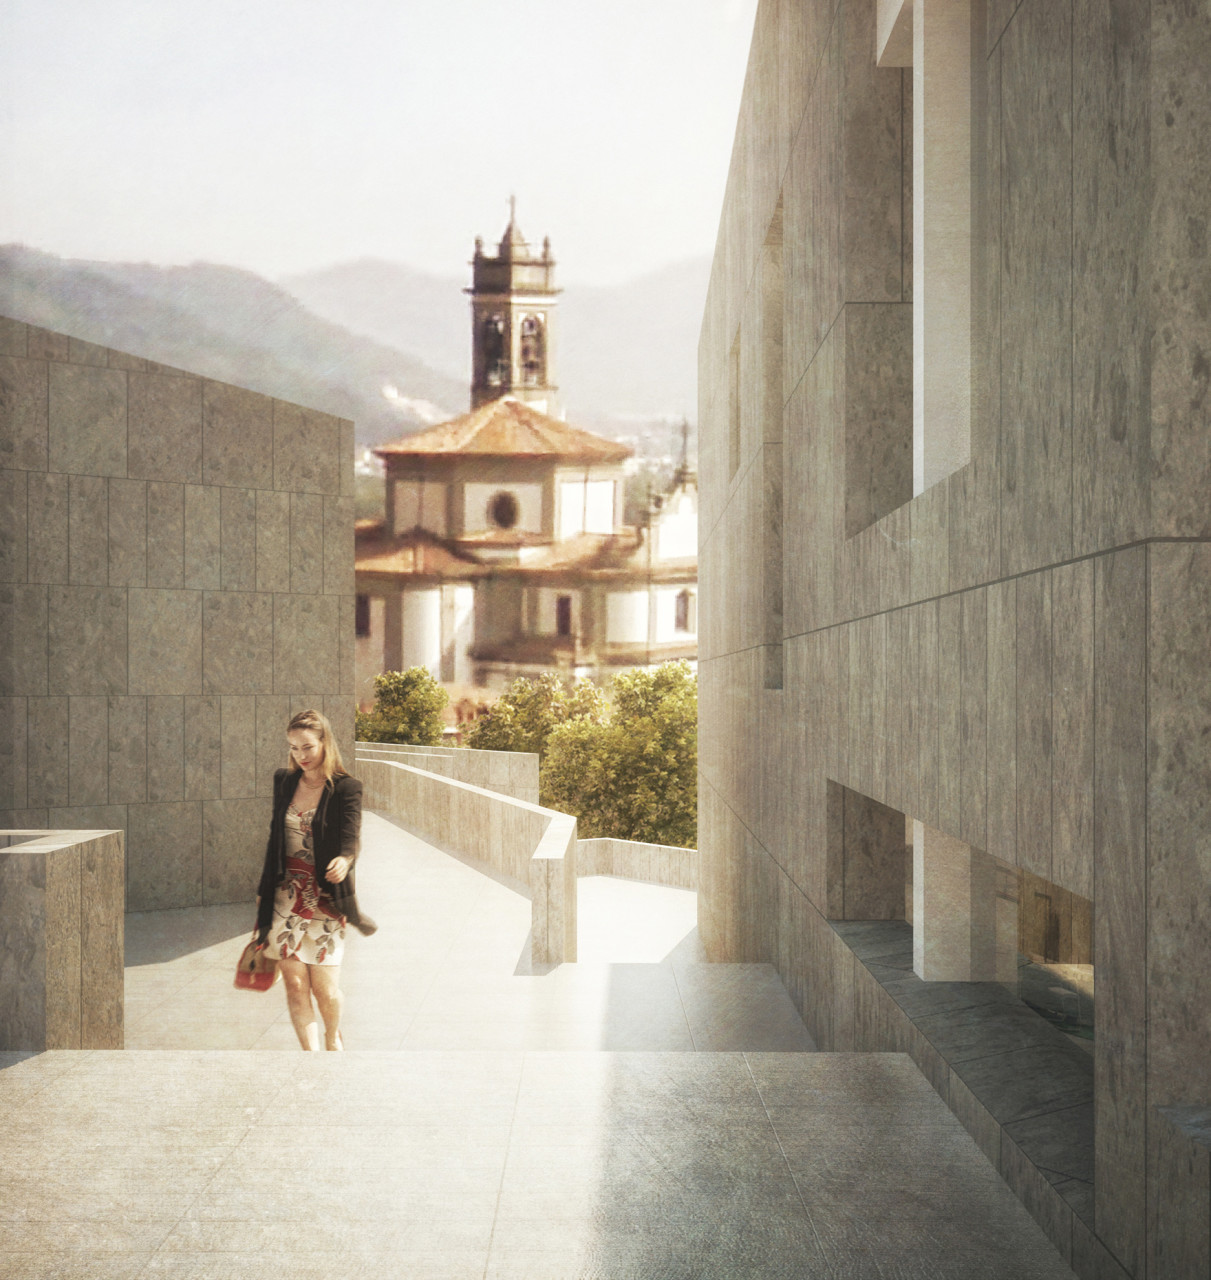 4 Wisp-Architects-Comune Cenate Sopra-Render